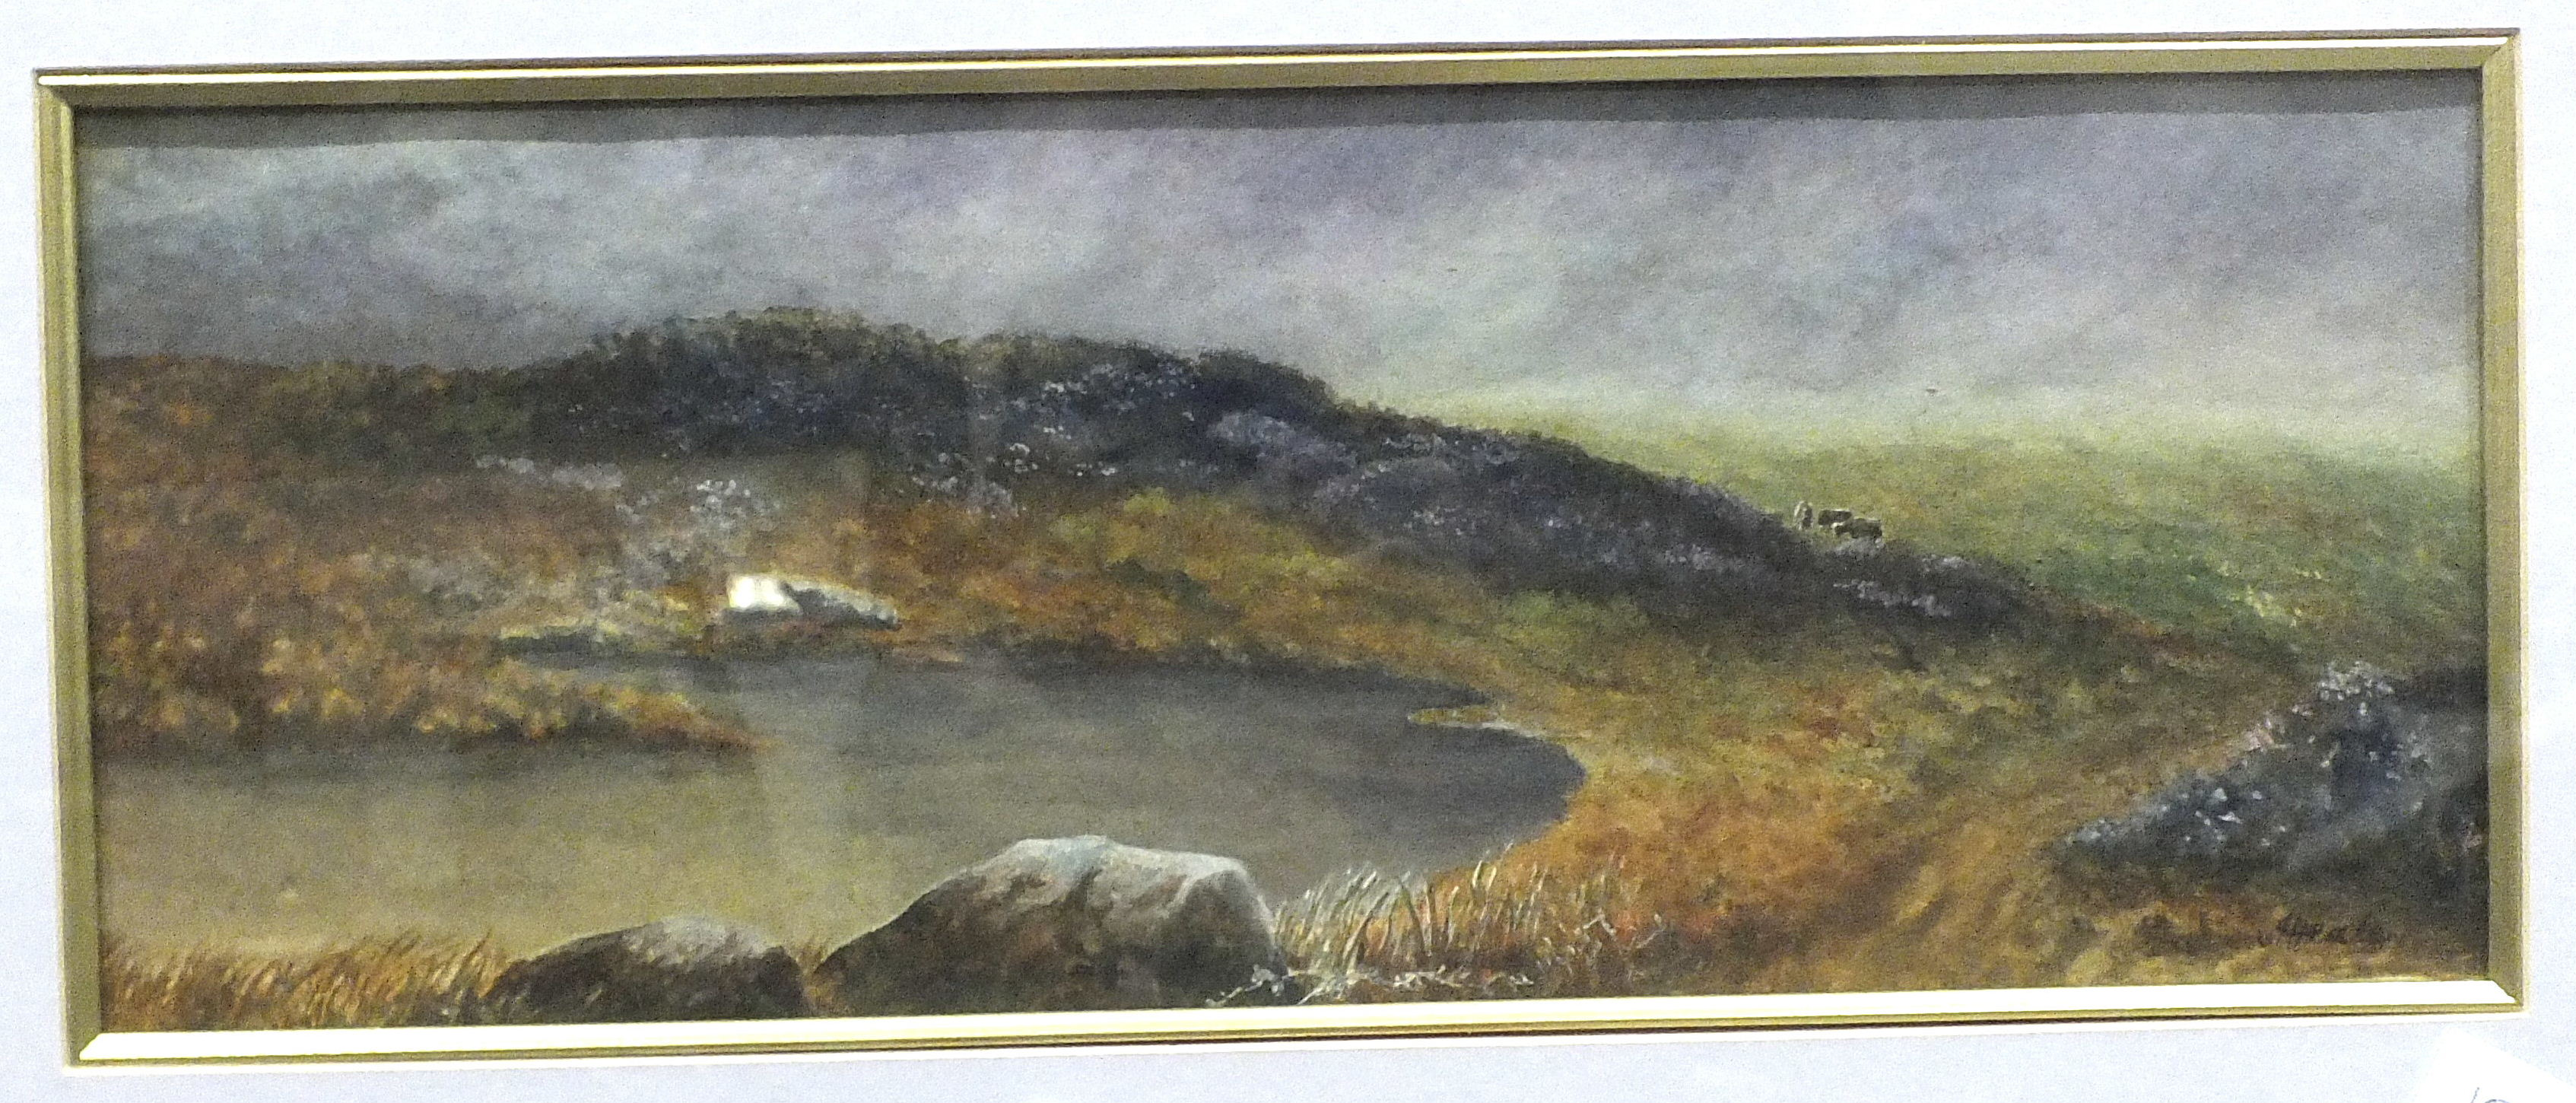 Lot 36 - Heale, 'Moorland Scene', watercolour, signed, 16 x 40cm and other pictures.